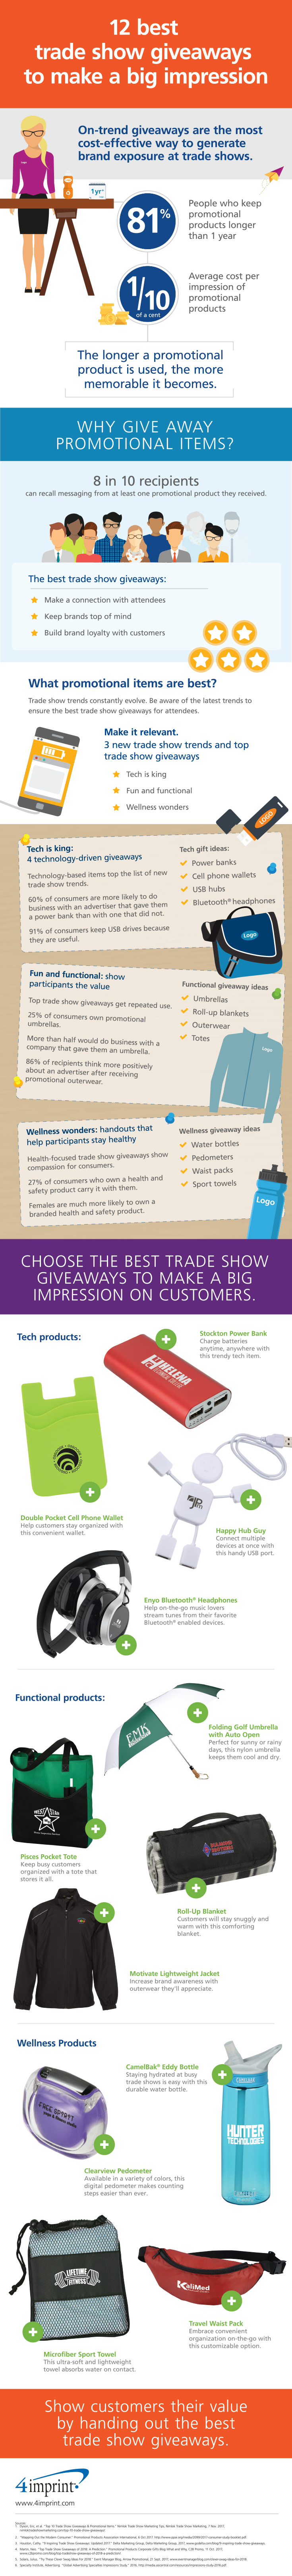 https___info.4imprint.com_wp-content_uploads_4imprint_TradeShowGiveaways_Infographic_FNL